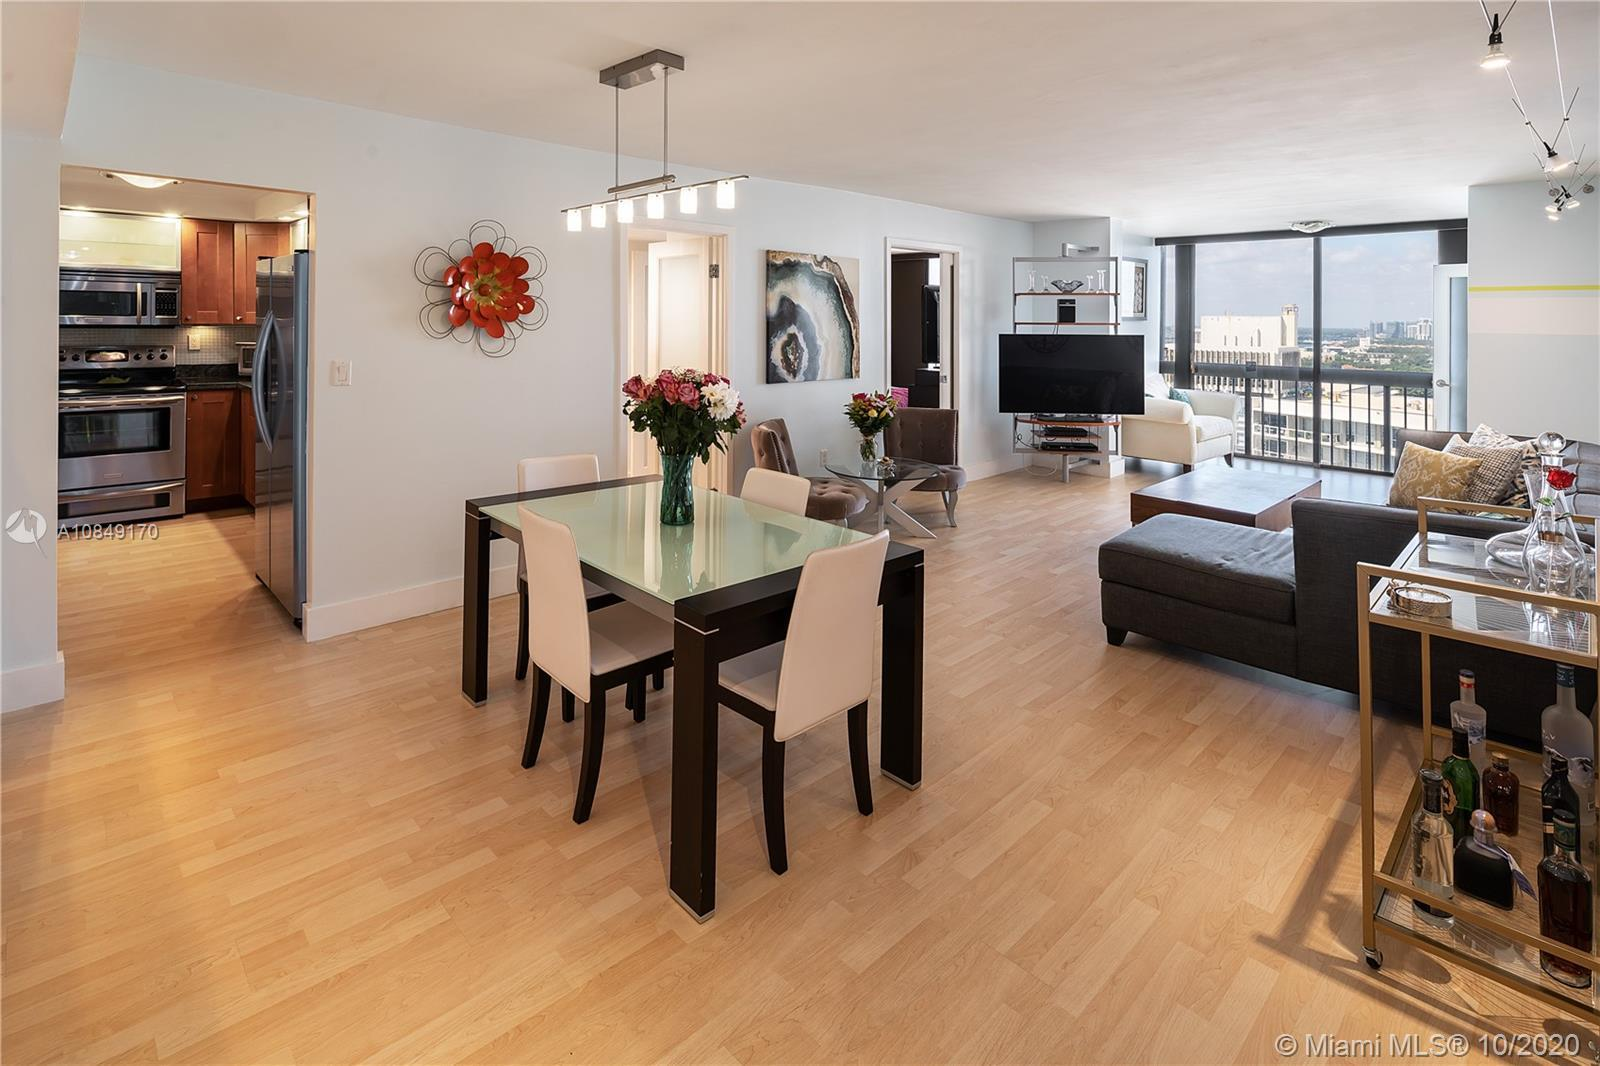 Move-in ready Unit in Brickell Bay Club.  This remodeled waterfront apartment has 2 Bedrooms & 2 Bat